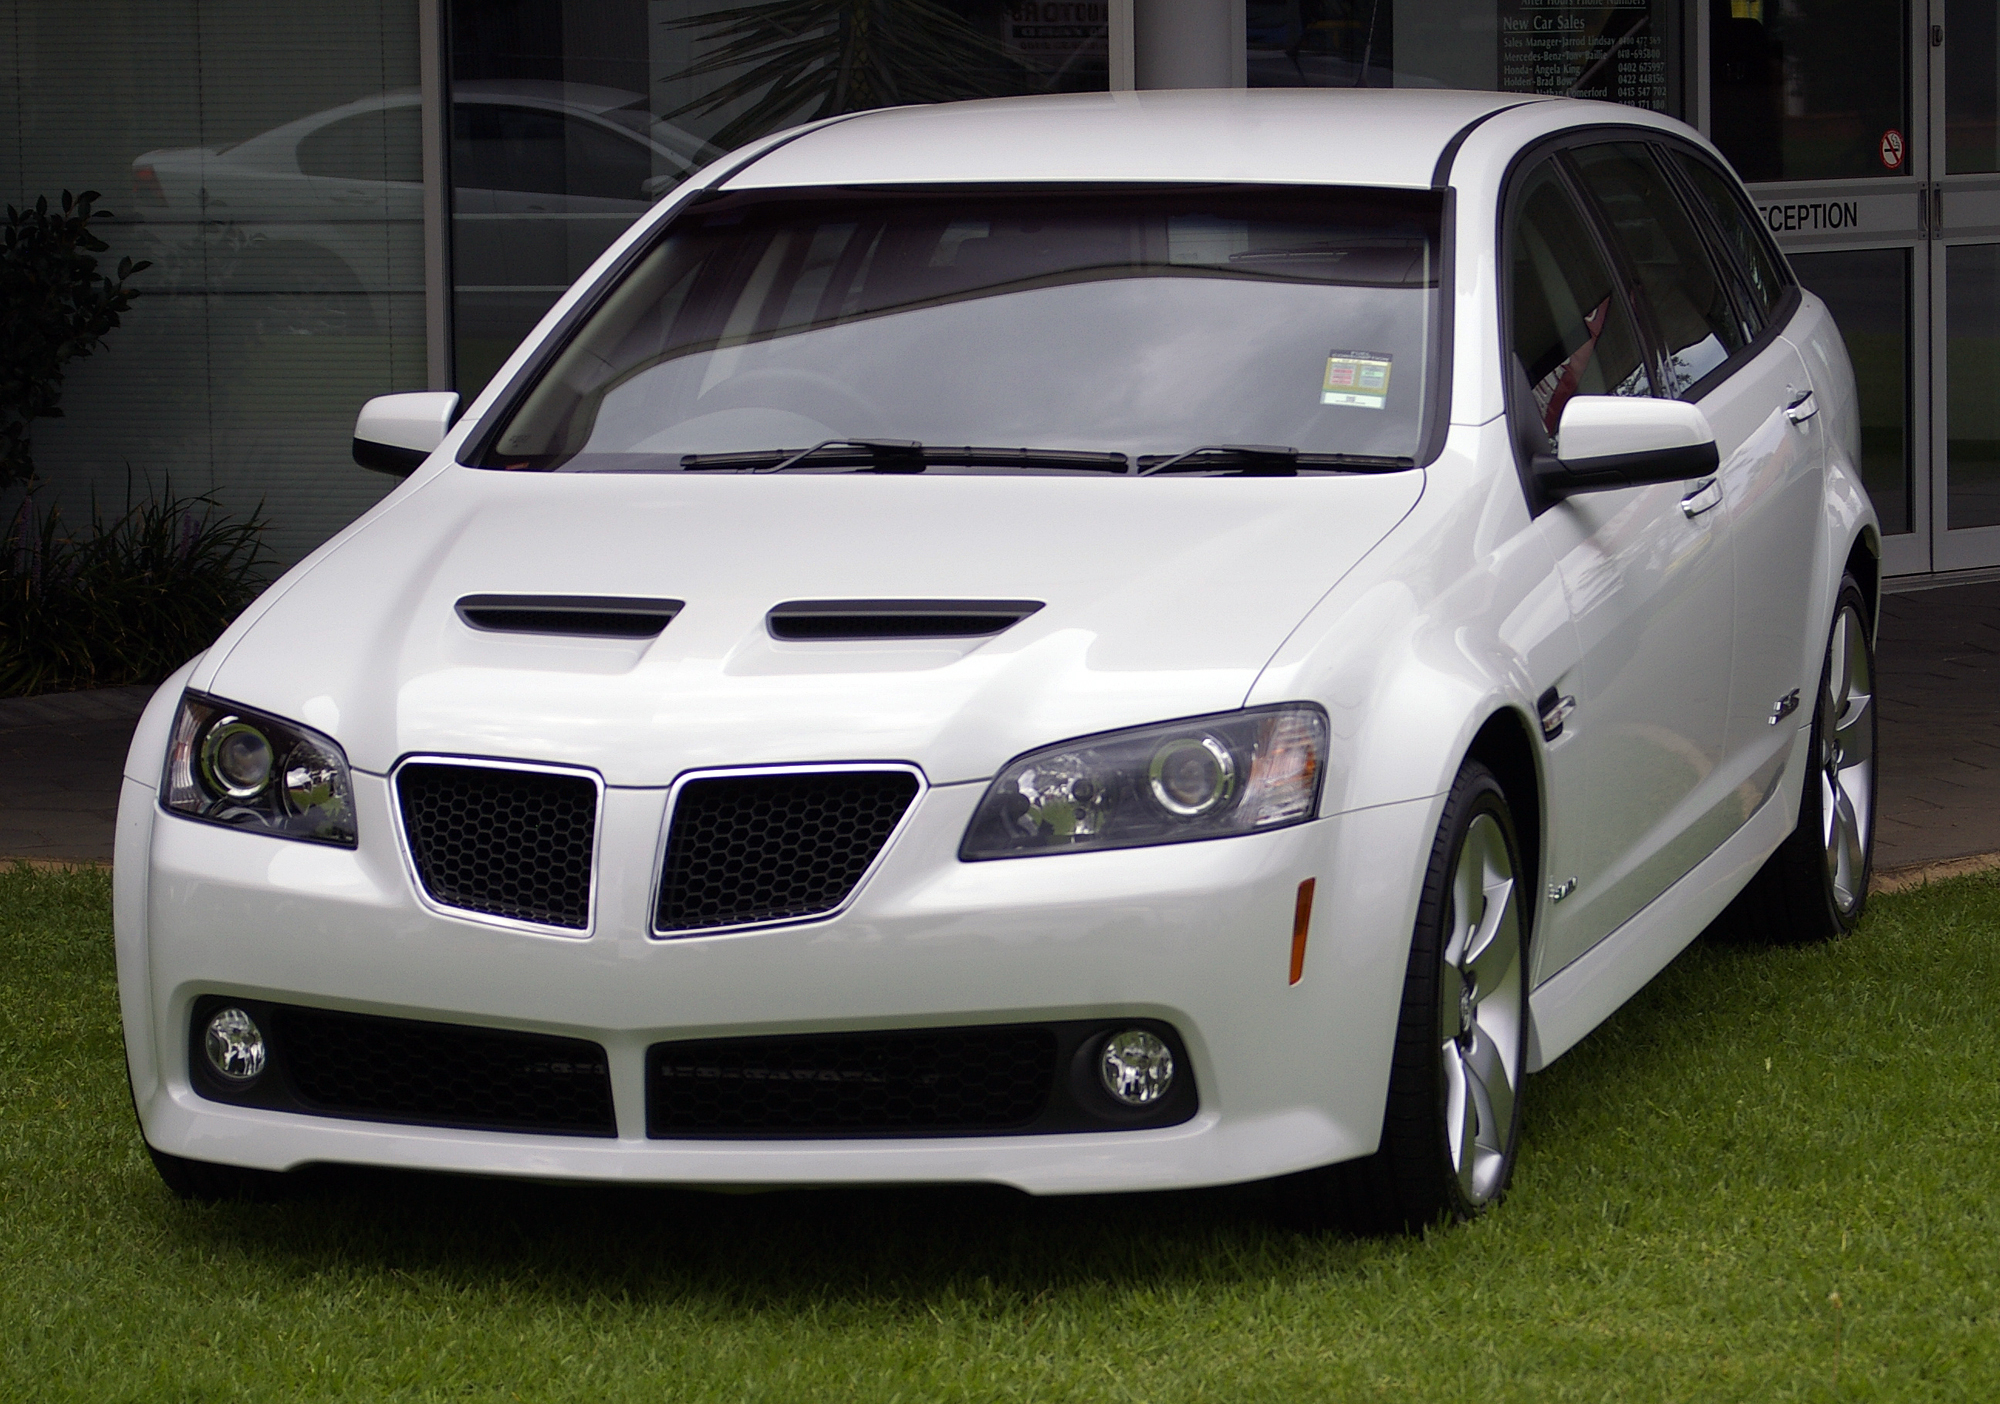 2010 Holden Commodore Are You Selling Sell My Car Buy